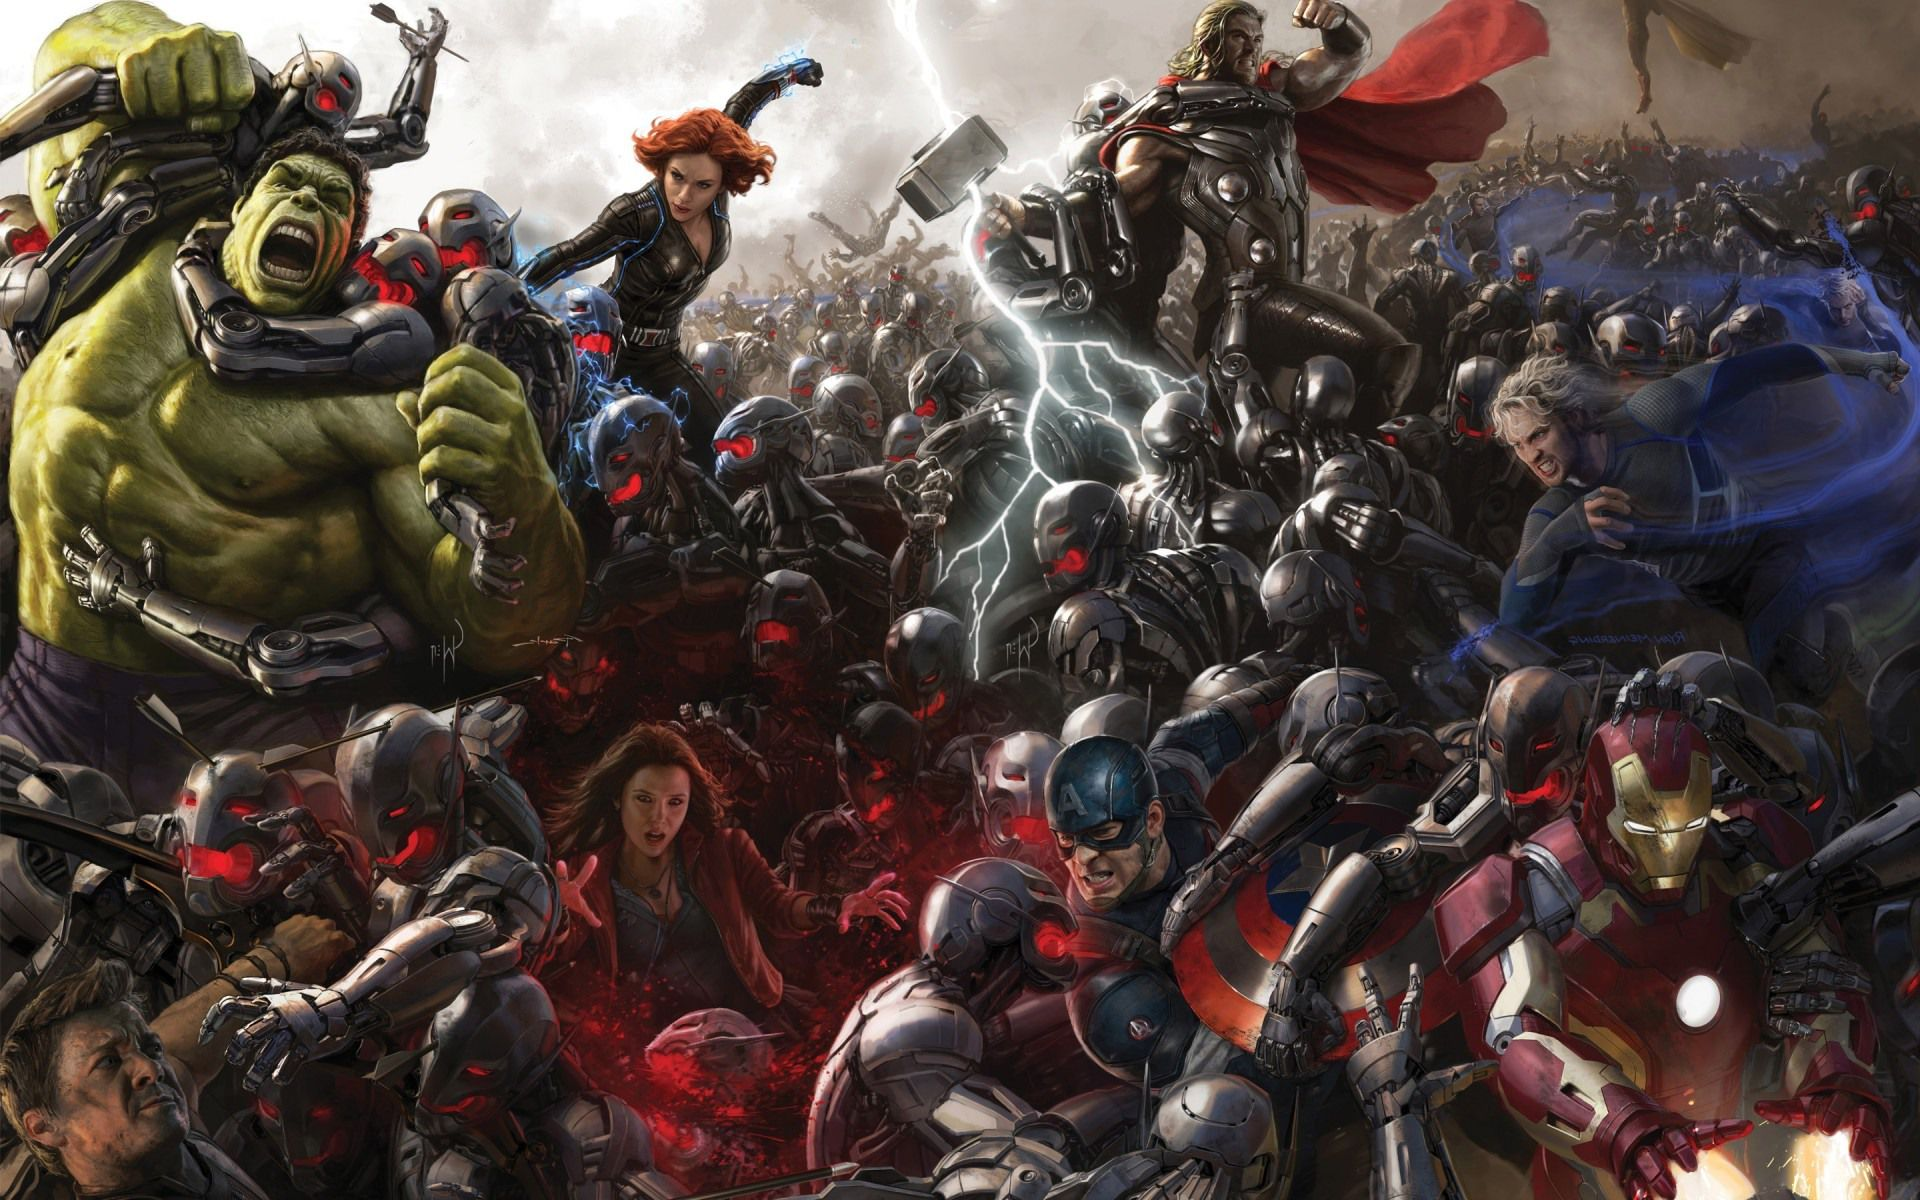 http://media.comicbook.com/uploads1/2015/04/avengers-age-of-ultron-art-poster-133238.jpg